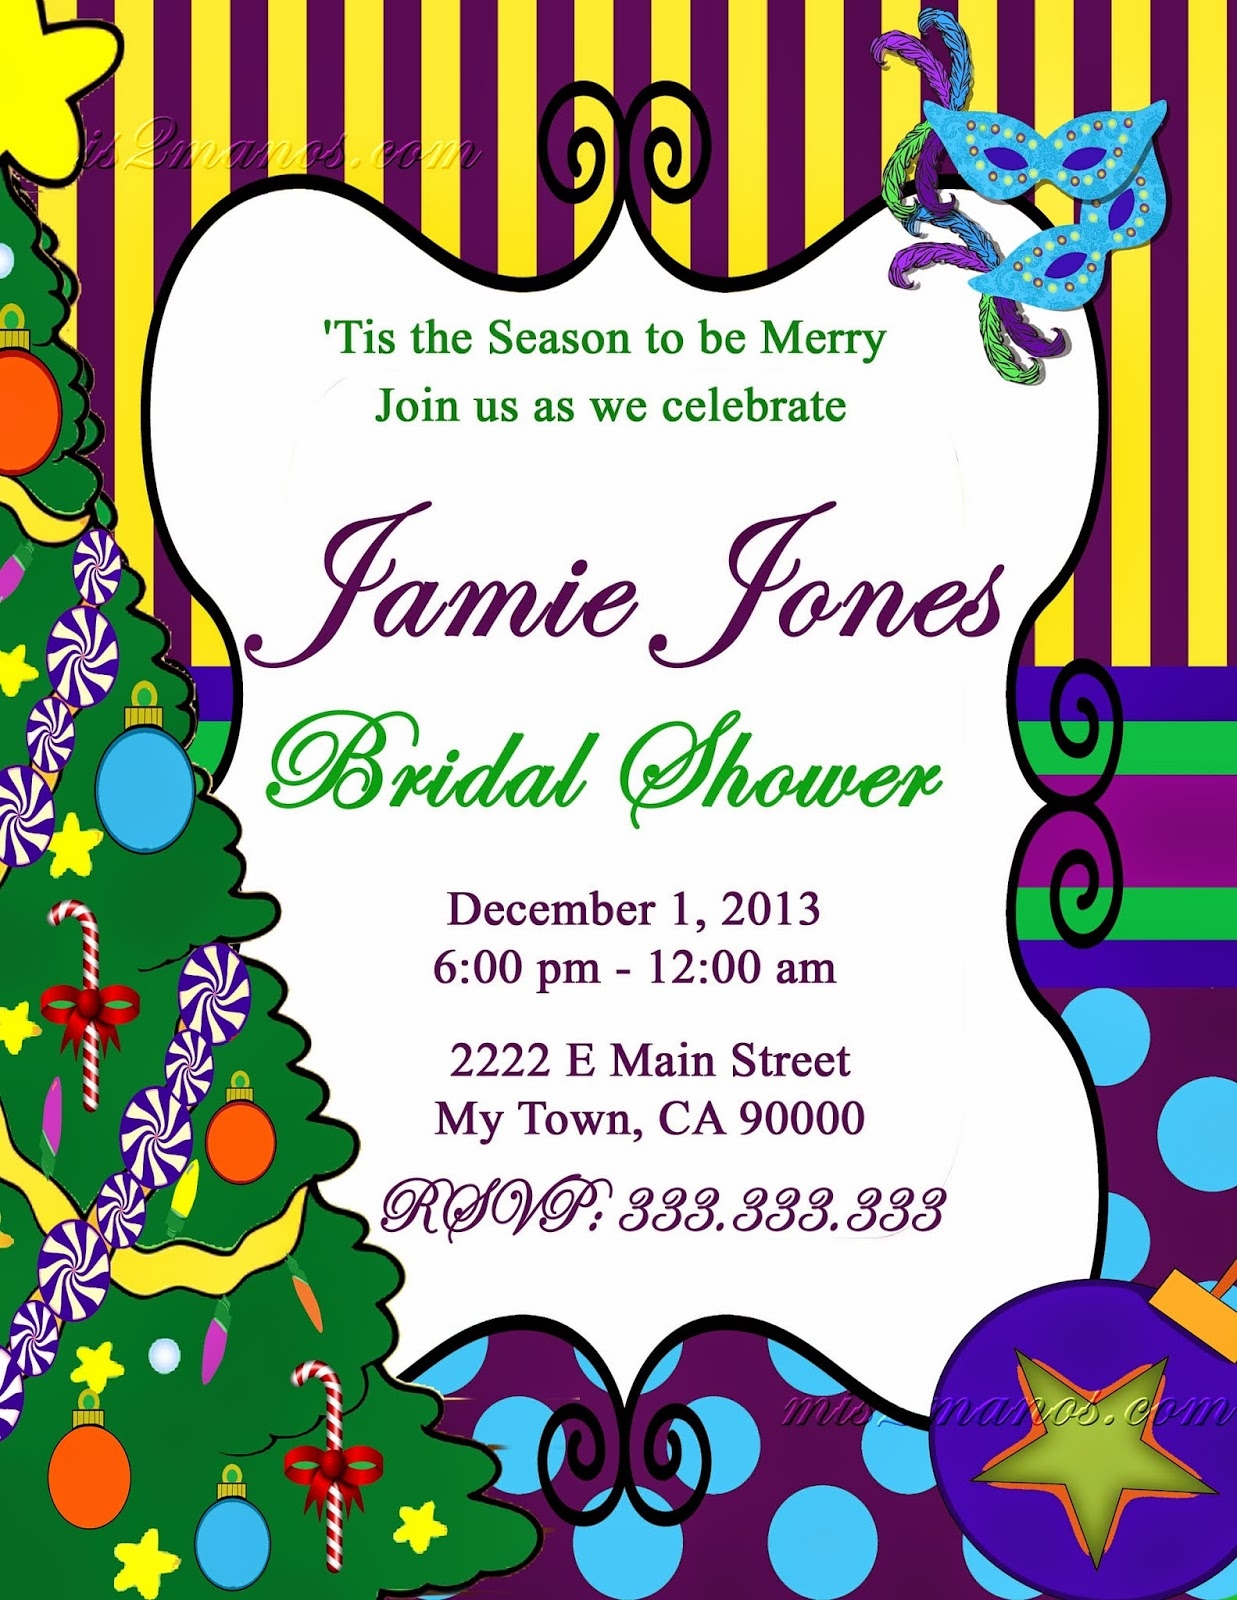 Mis 2 manos made by my hands mardi gras christmas bridal shower mardi gras christmas bridal shower baby shower holiday digital christmas invitation printable personalized christmas invitation monicamarmolfo Choice Image